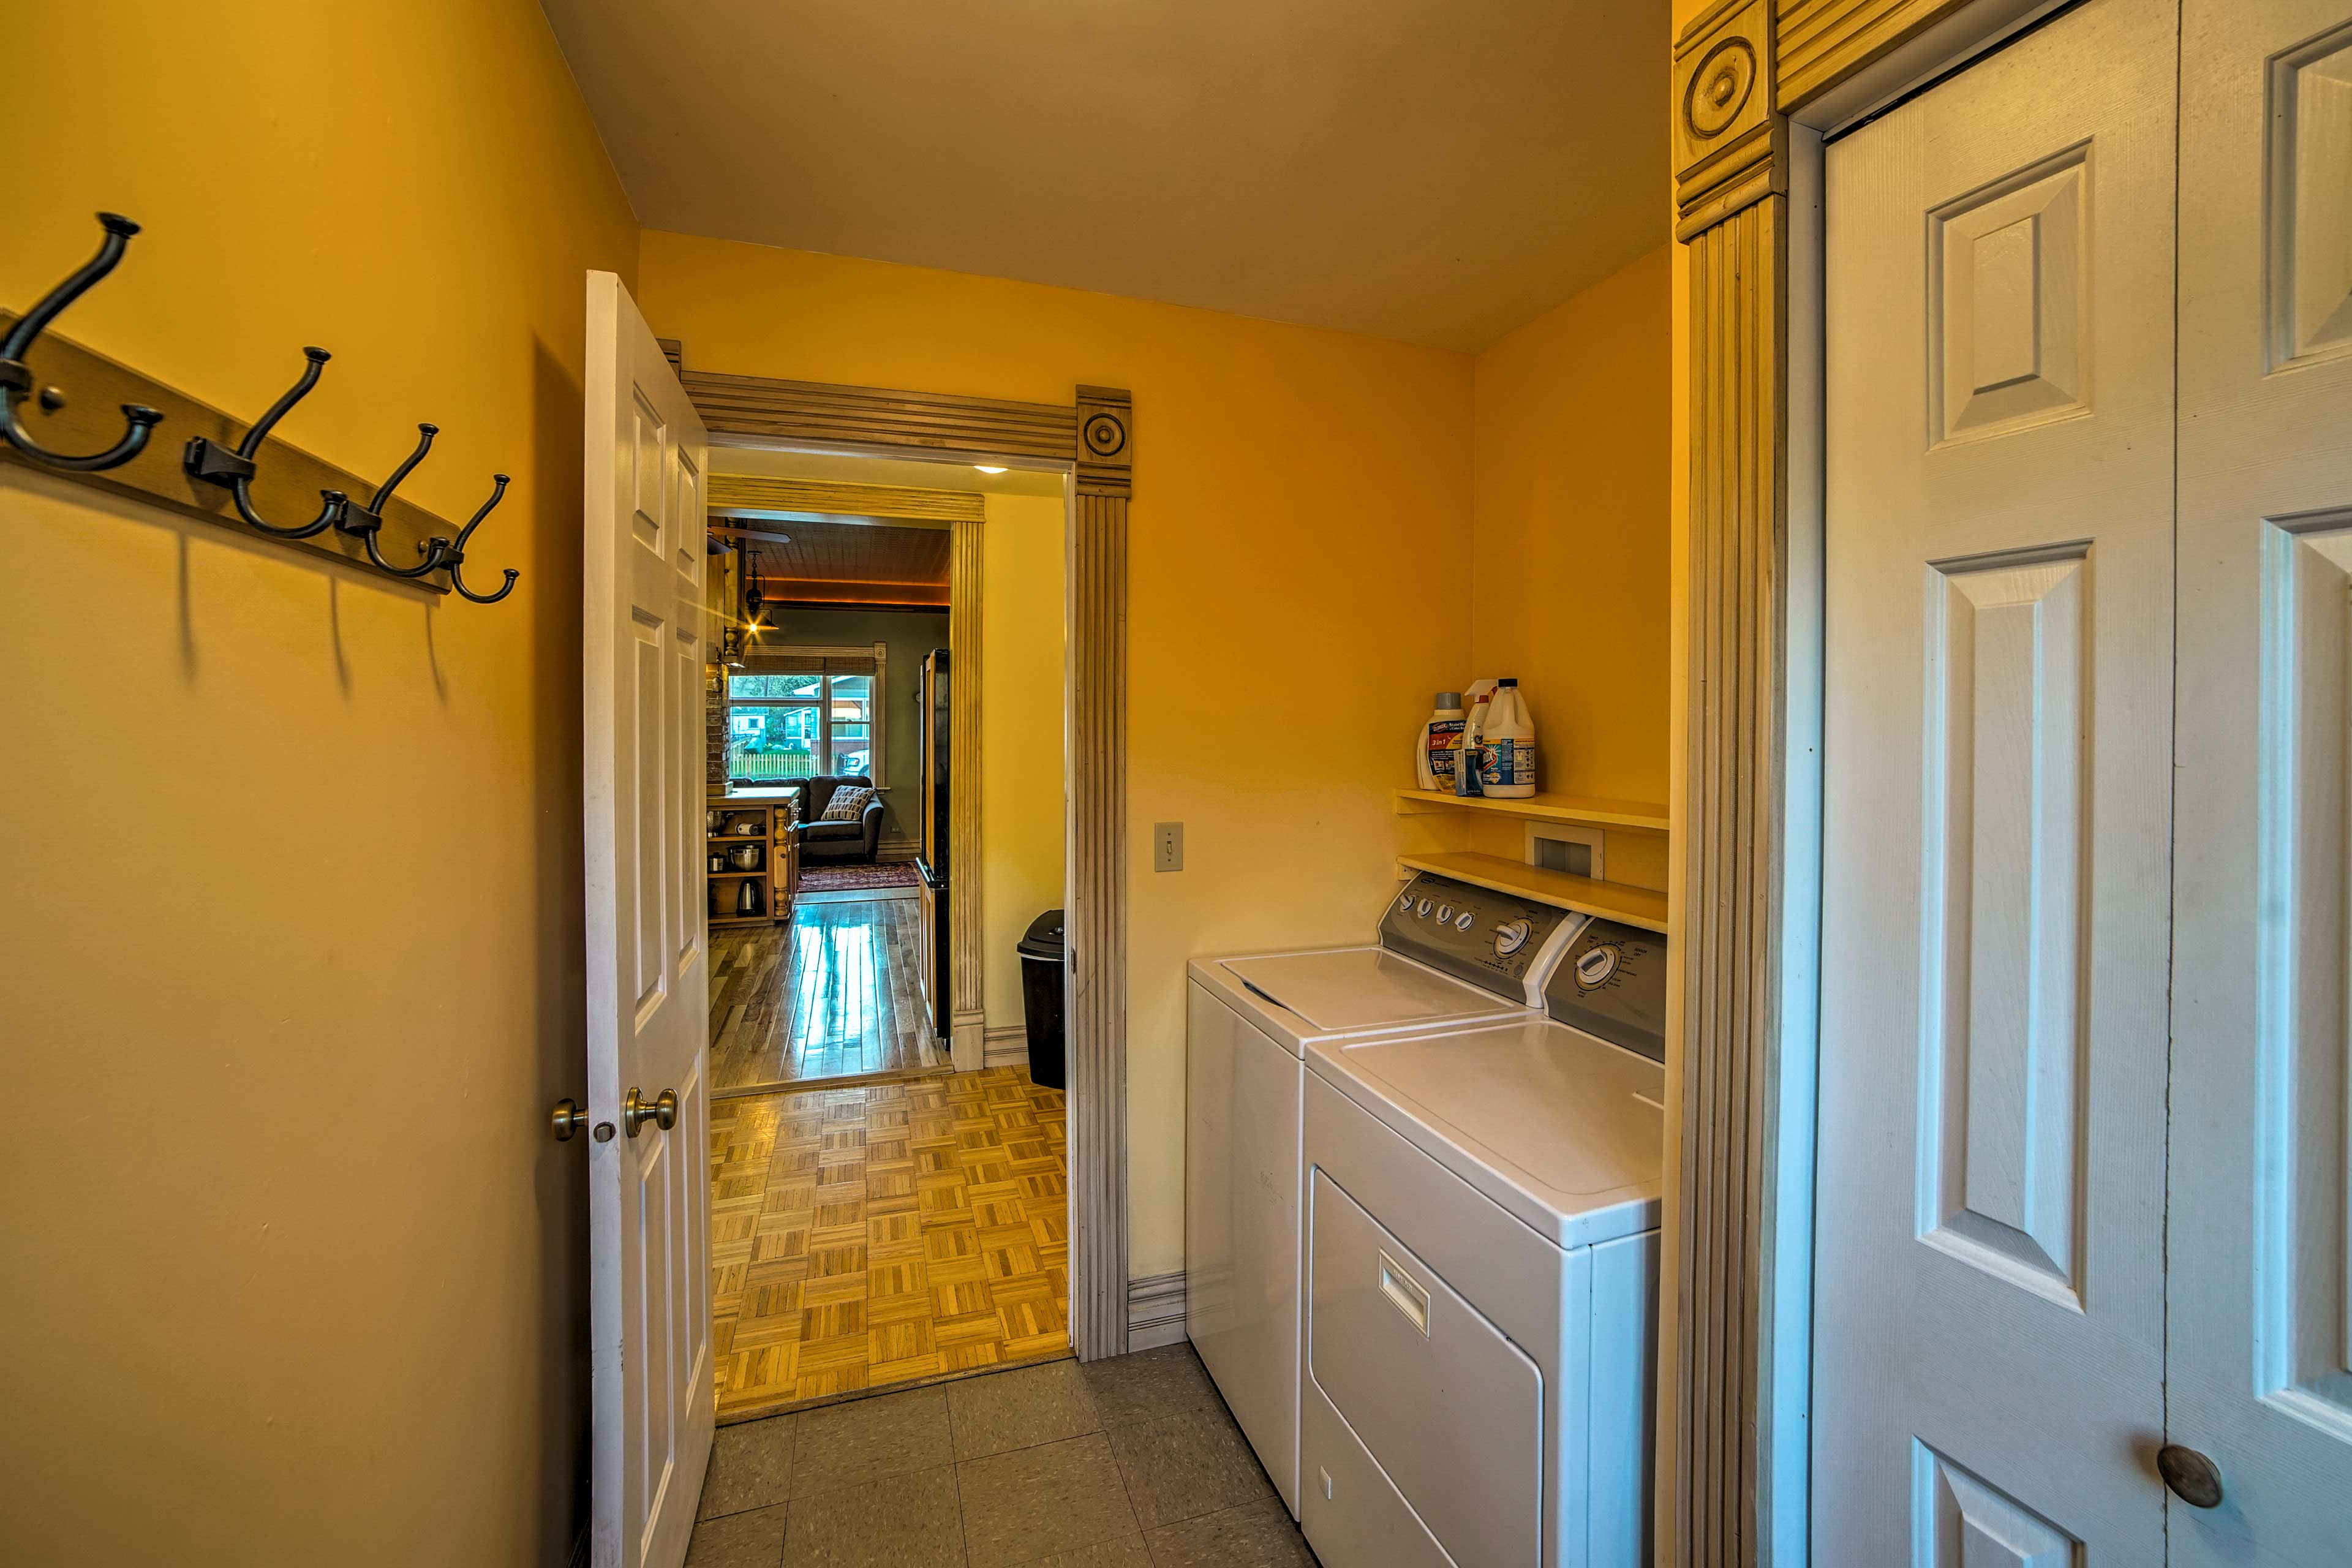 Wash and dry your clothes in the in-unit laundry room.